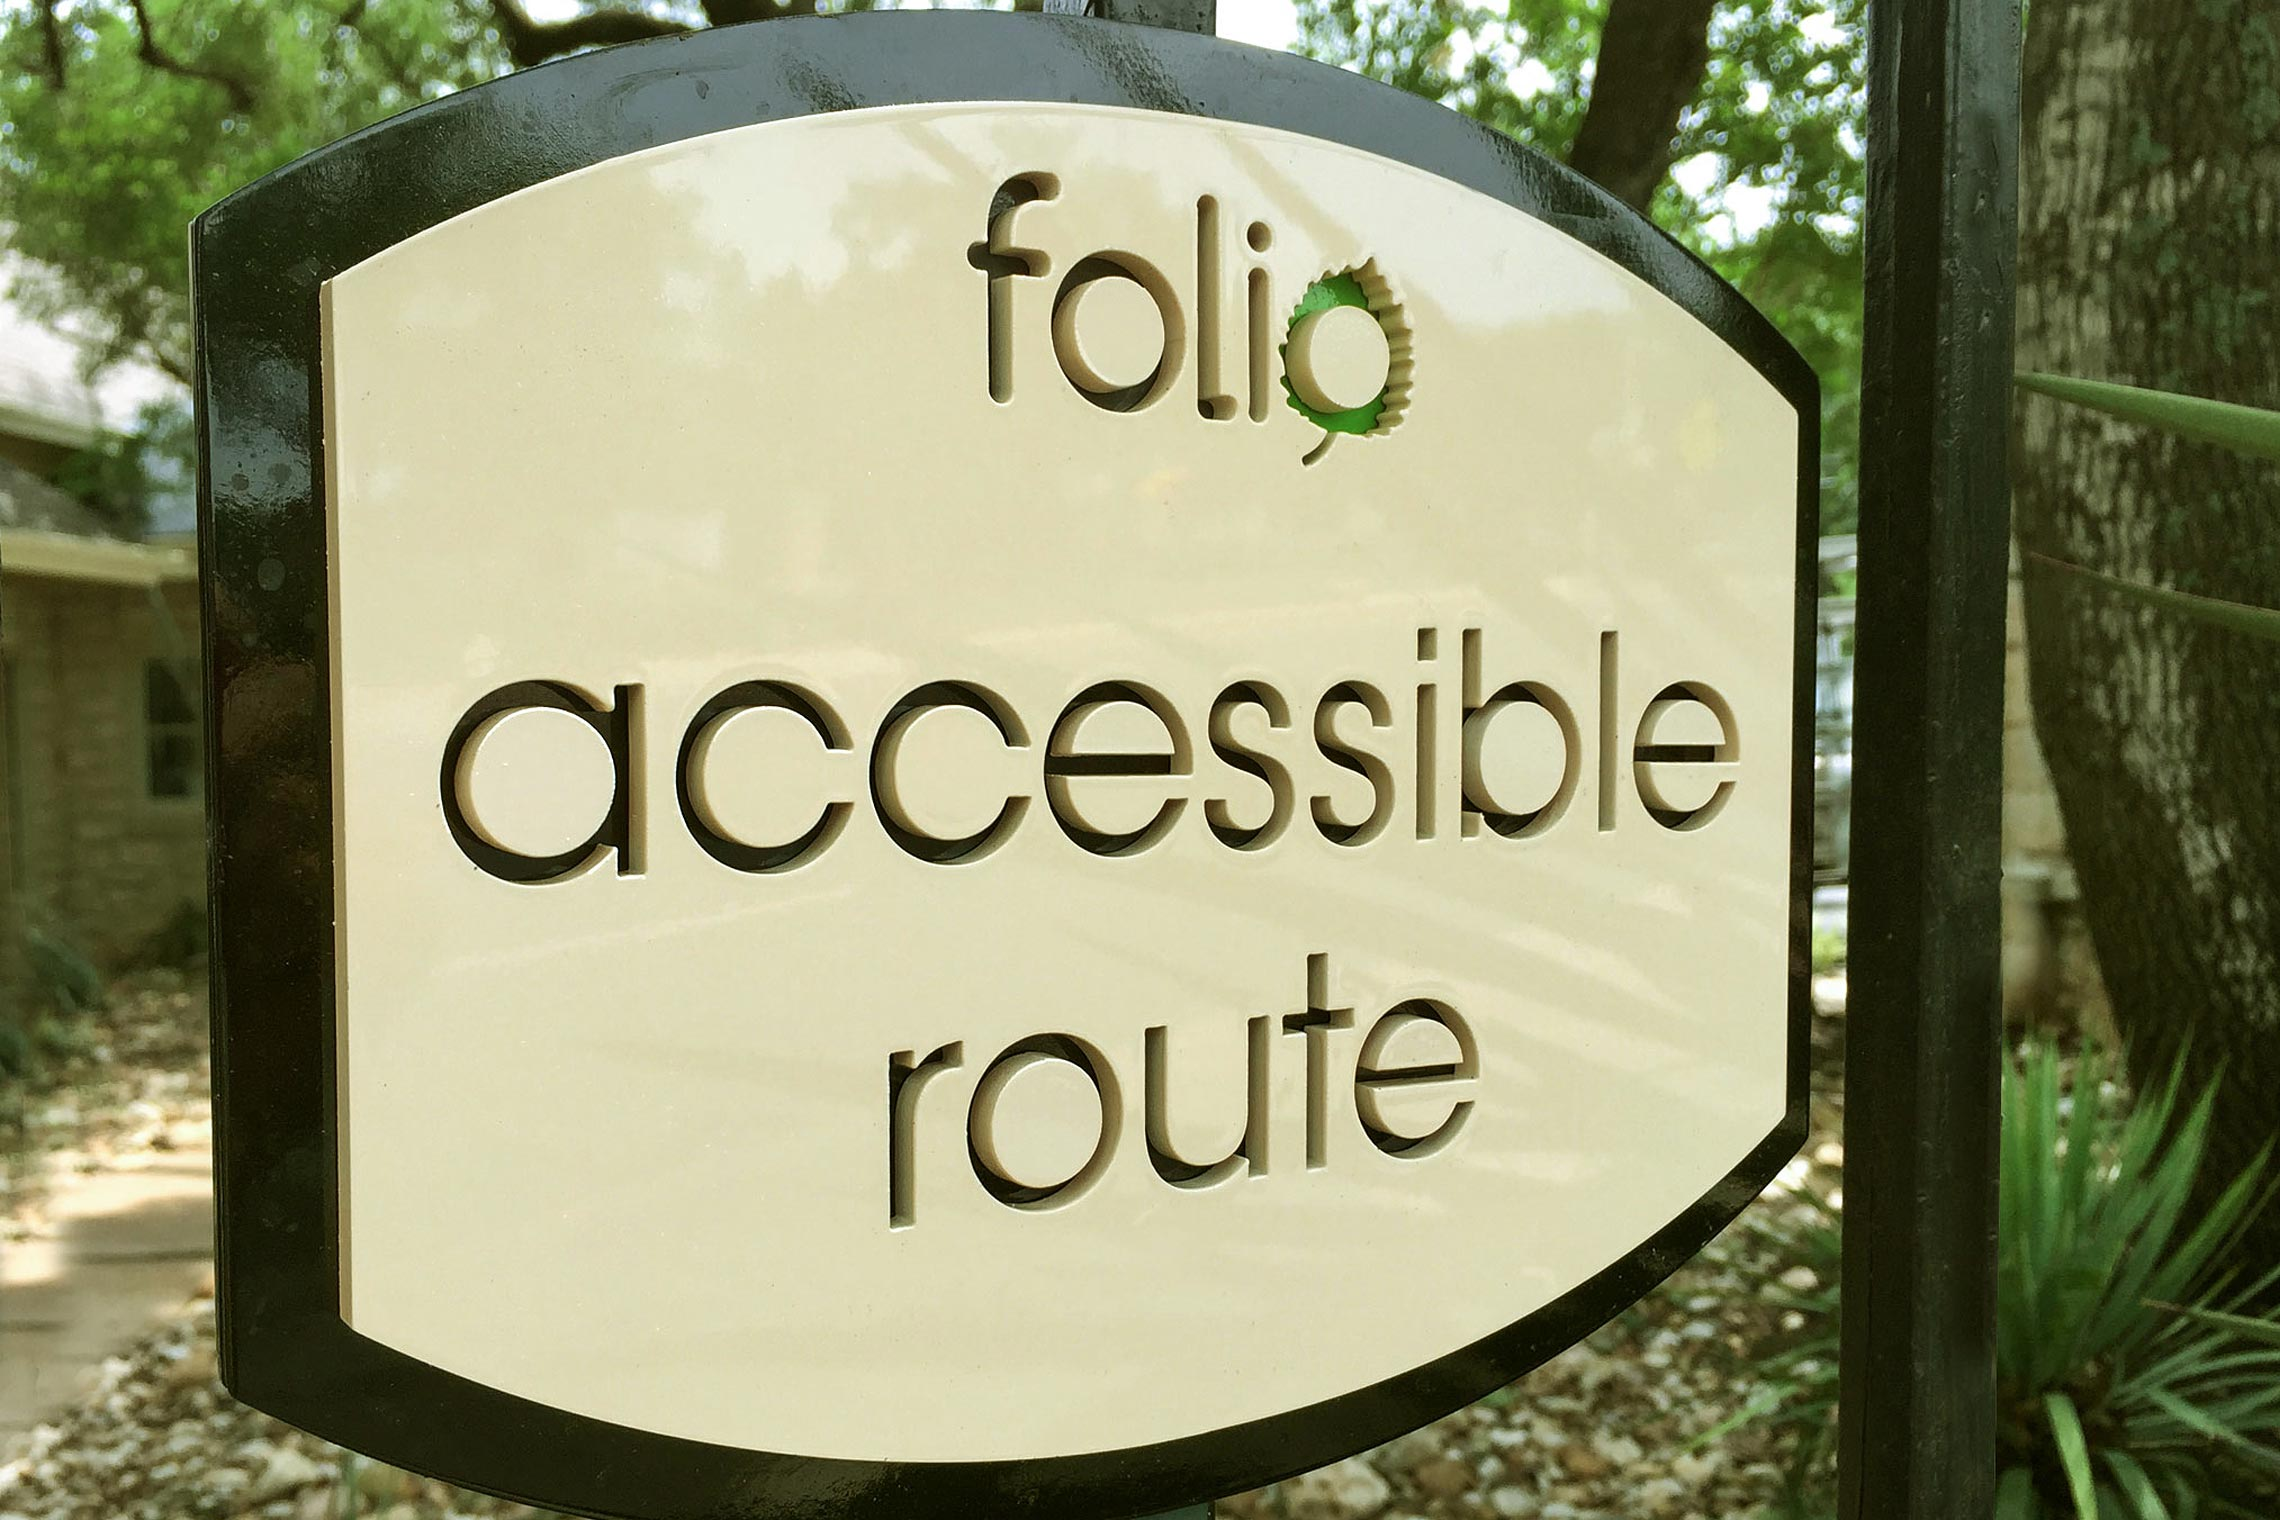 Folio Apartment Homes Accessible Route Sign on Gate